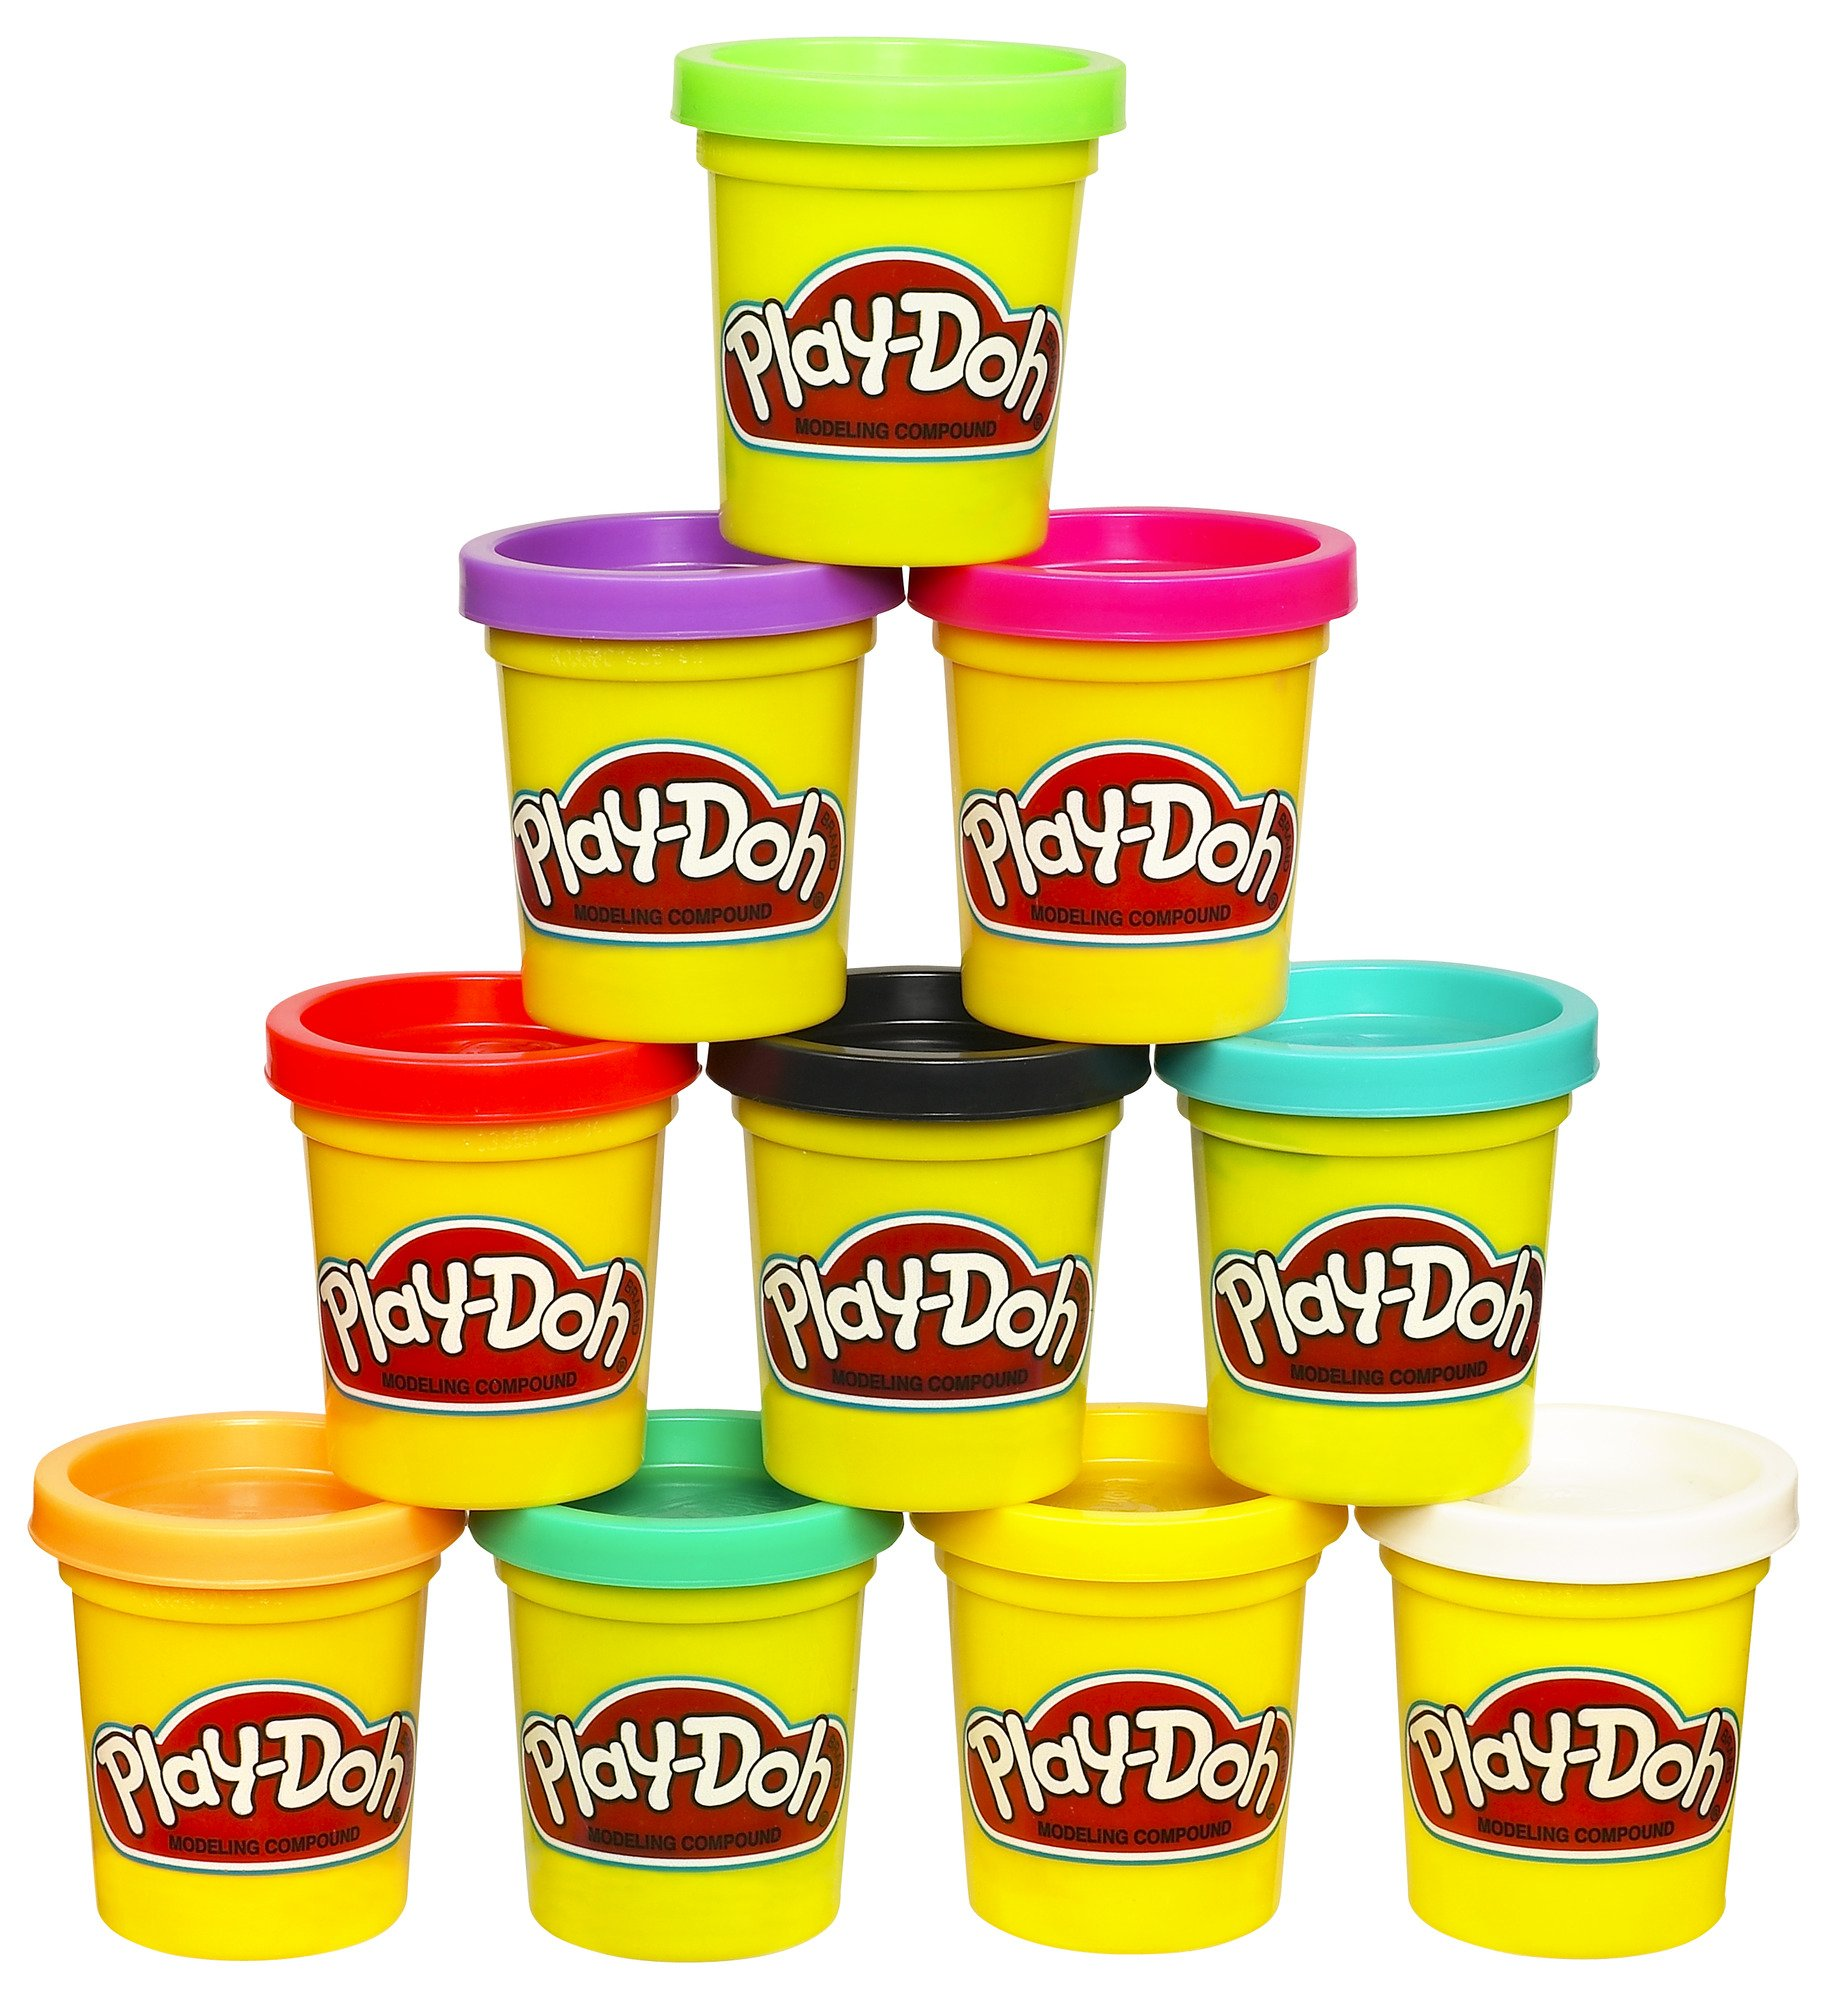 Play-Doh Modeling Compound 10 Pack Case of Colors Non-Toxic Assorted Colors 2 Oz Cans Ages 2 & Up (Amazon Exclusive) Multicolor